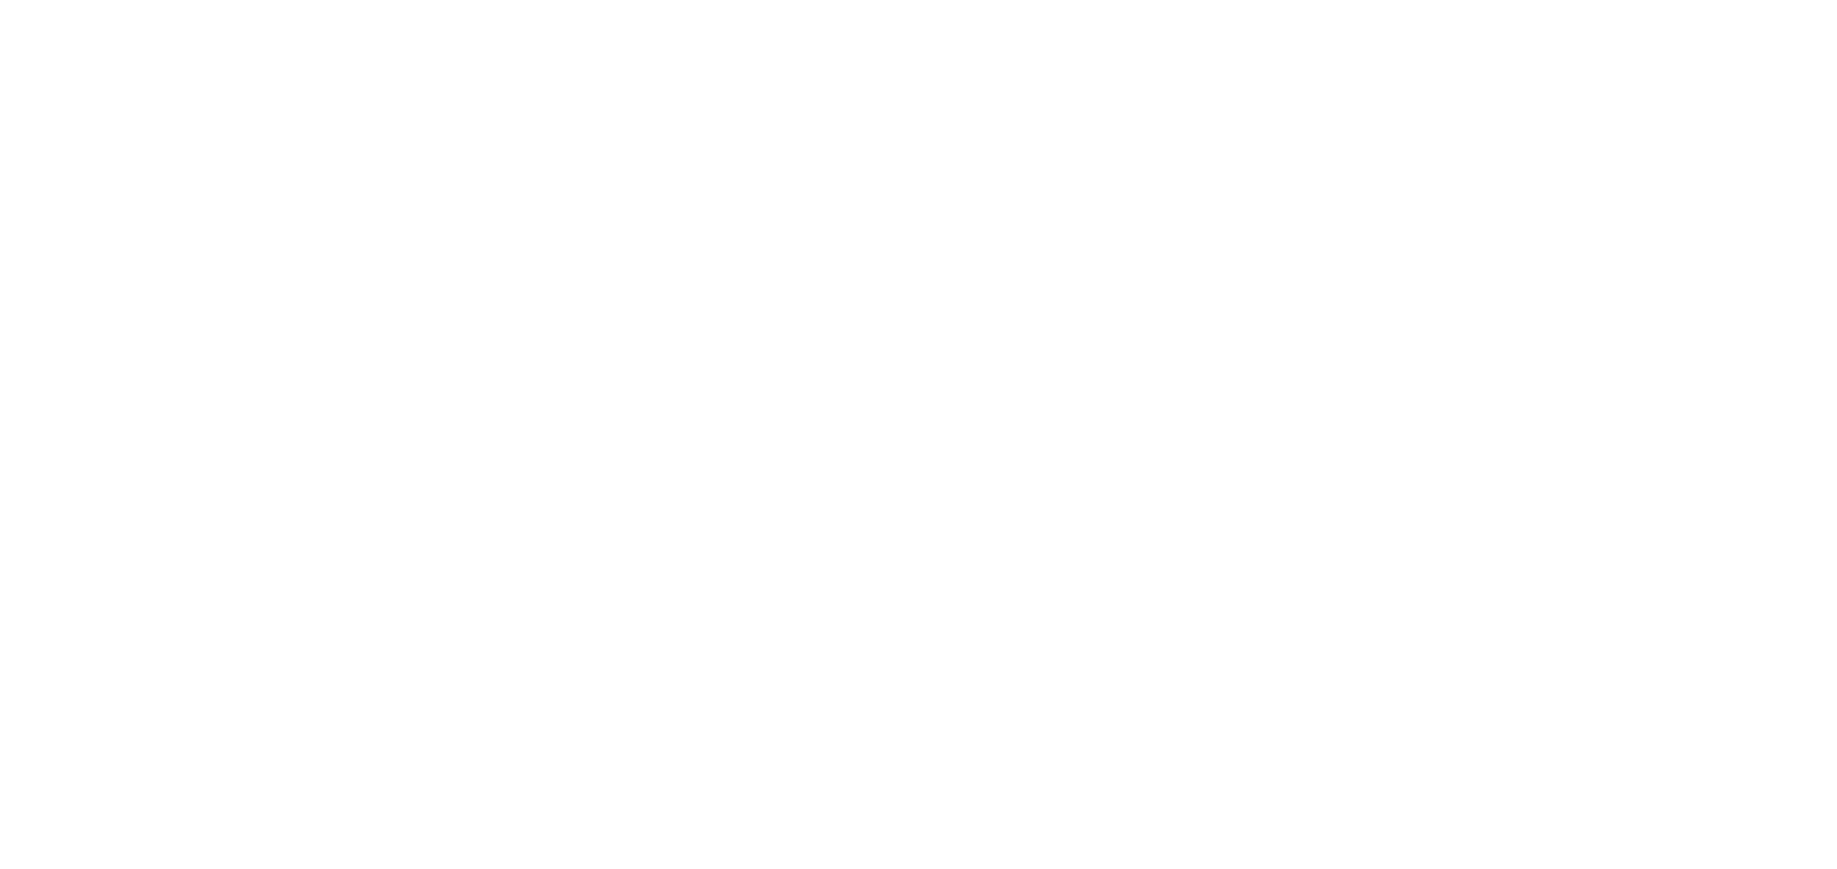 Pr News Platinum Awards, The Sabre Awards, PR Agency Elite Awards, The Communicator Awards, Bulldog Awards, The Bell Ringer Awards